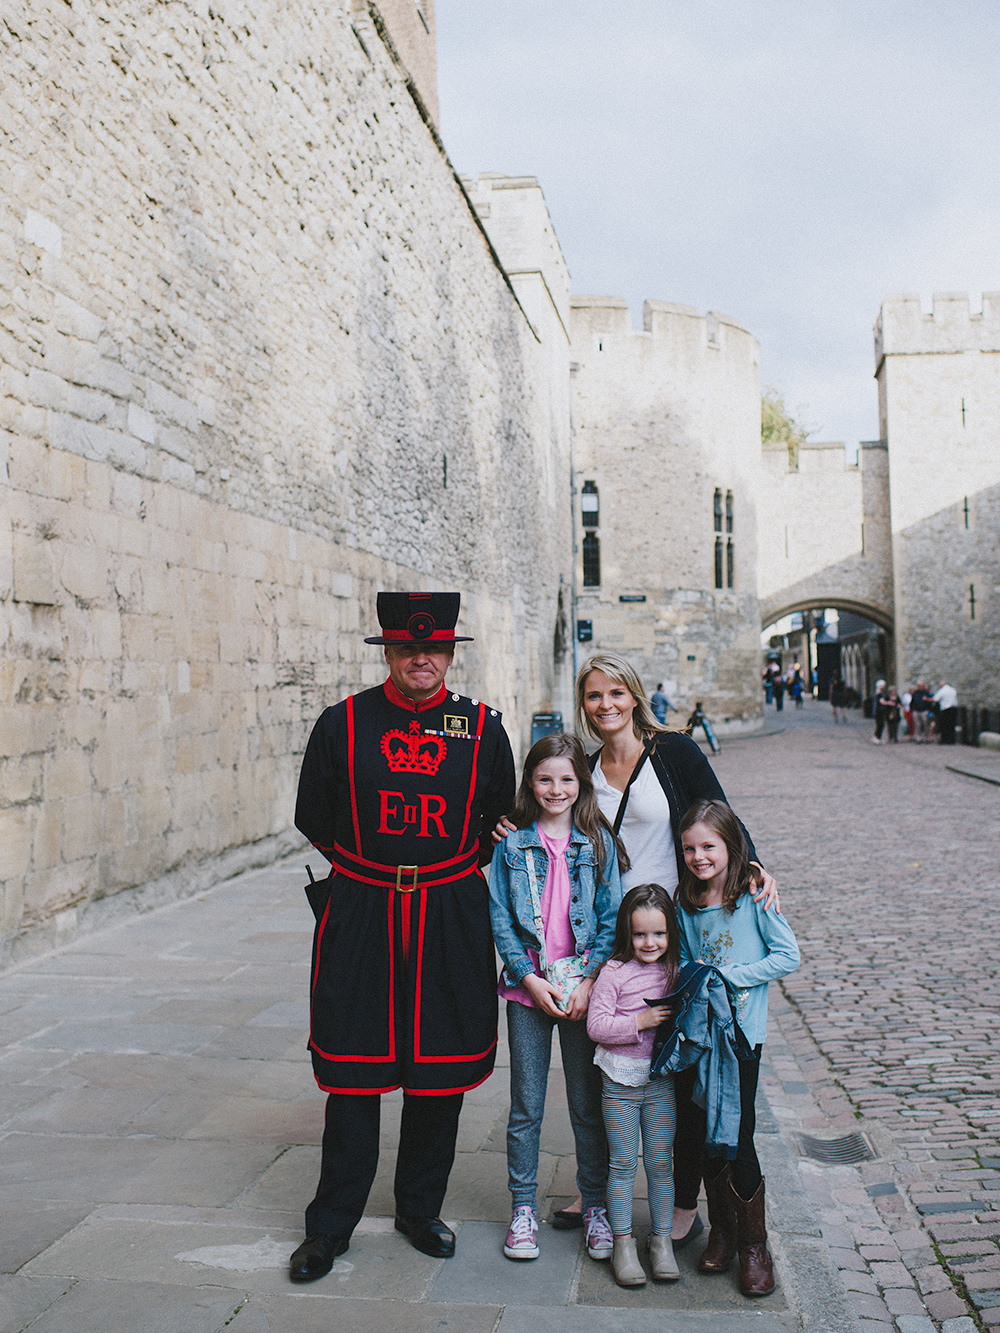 At the Tower of London with a Beefeater